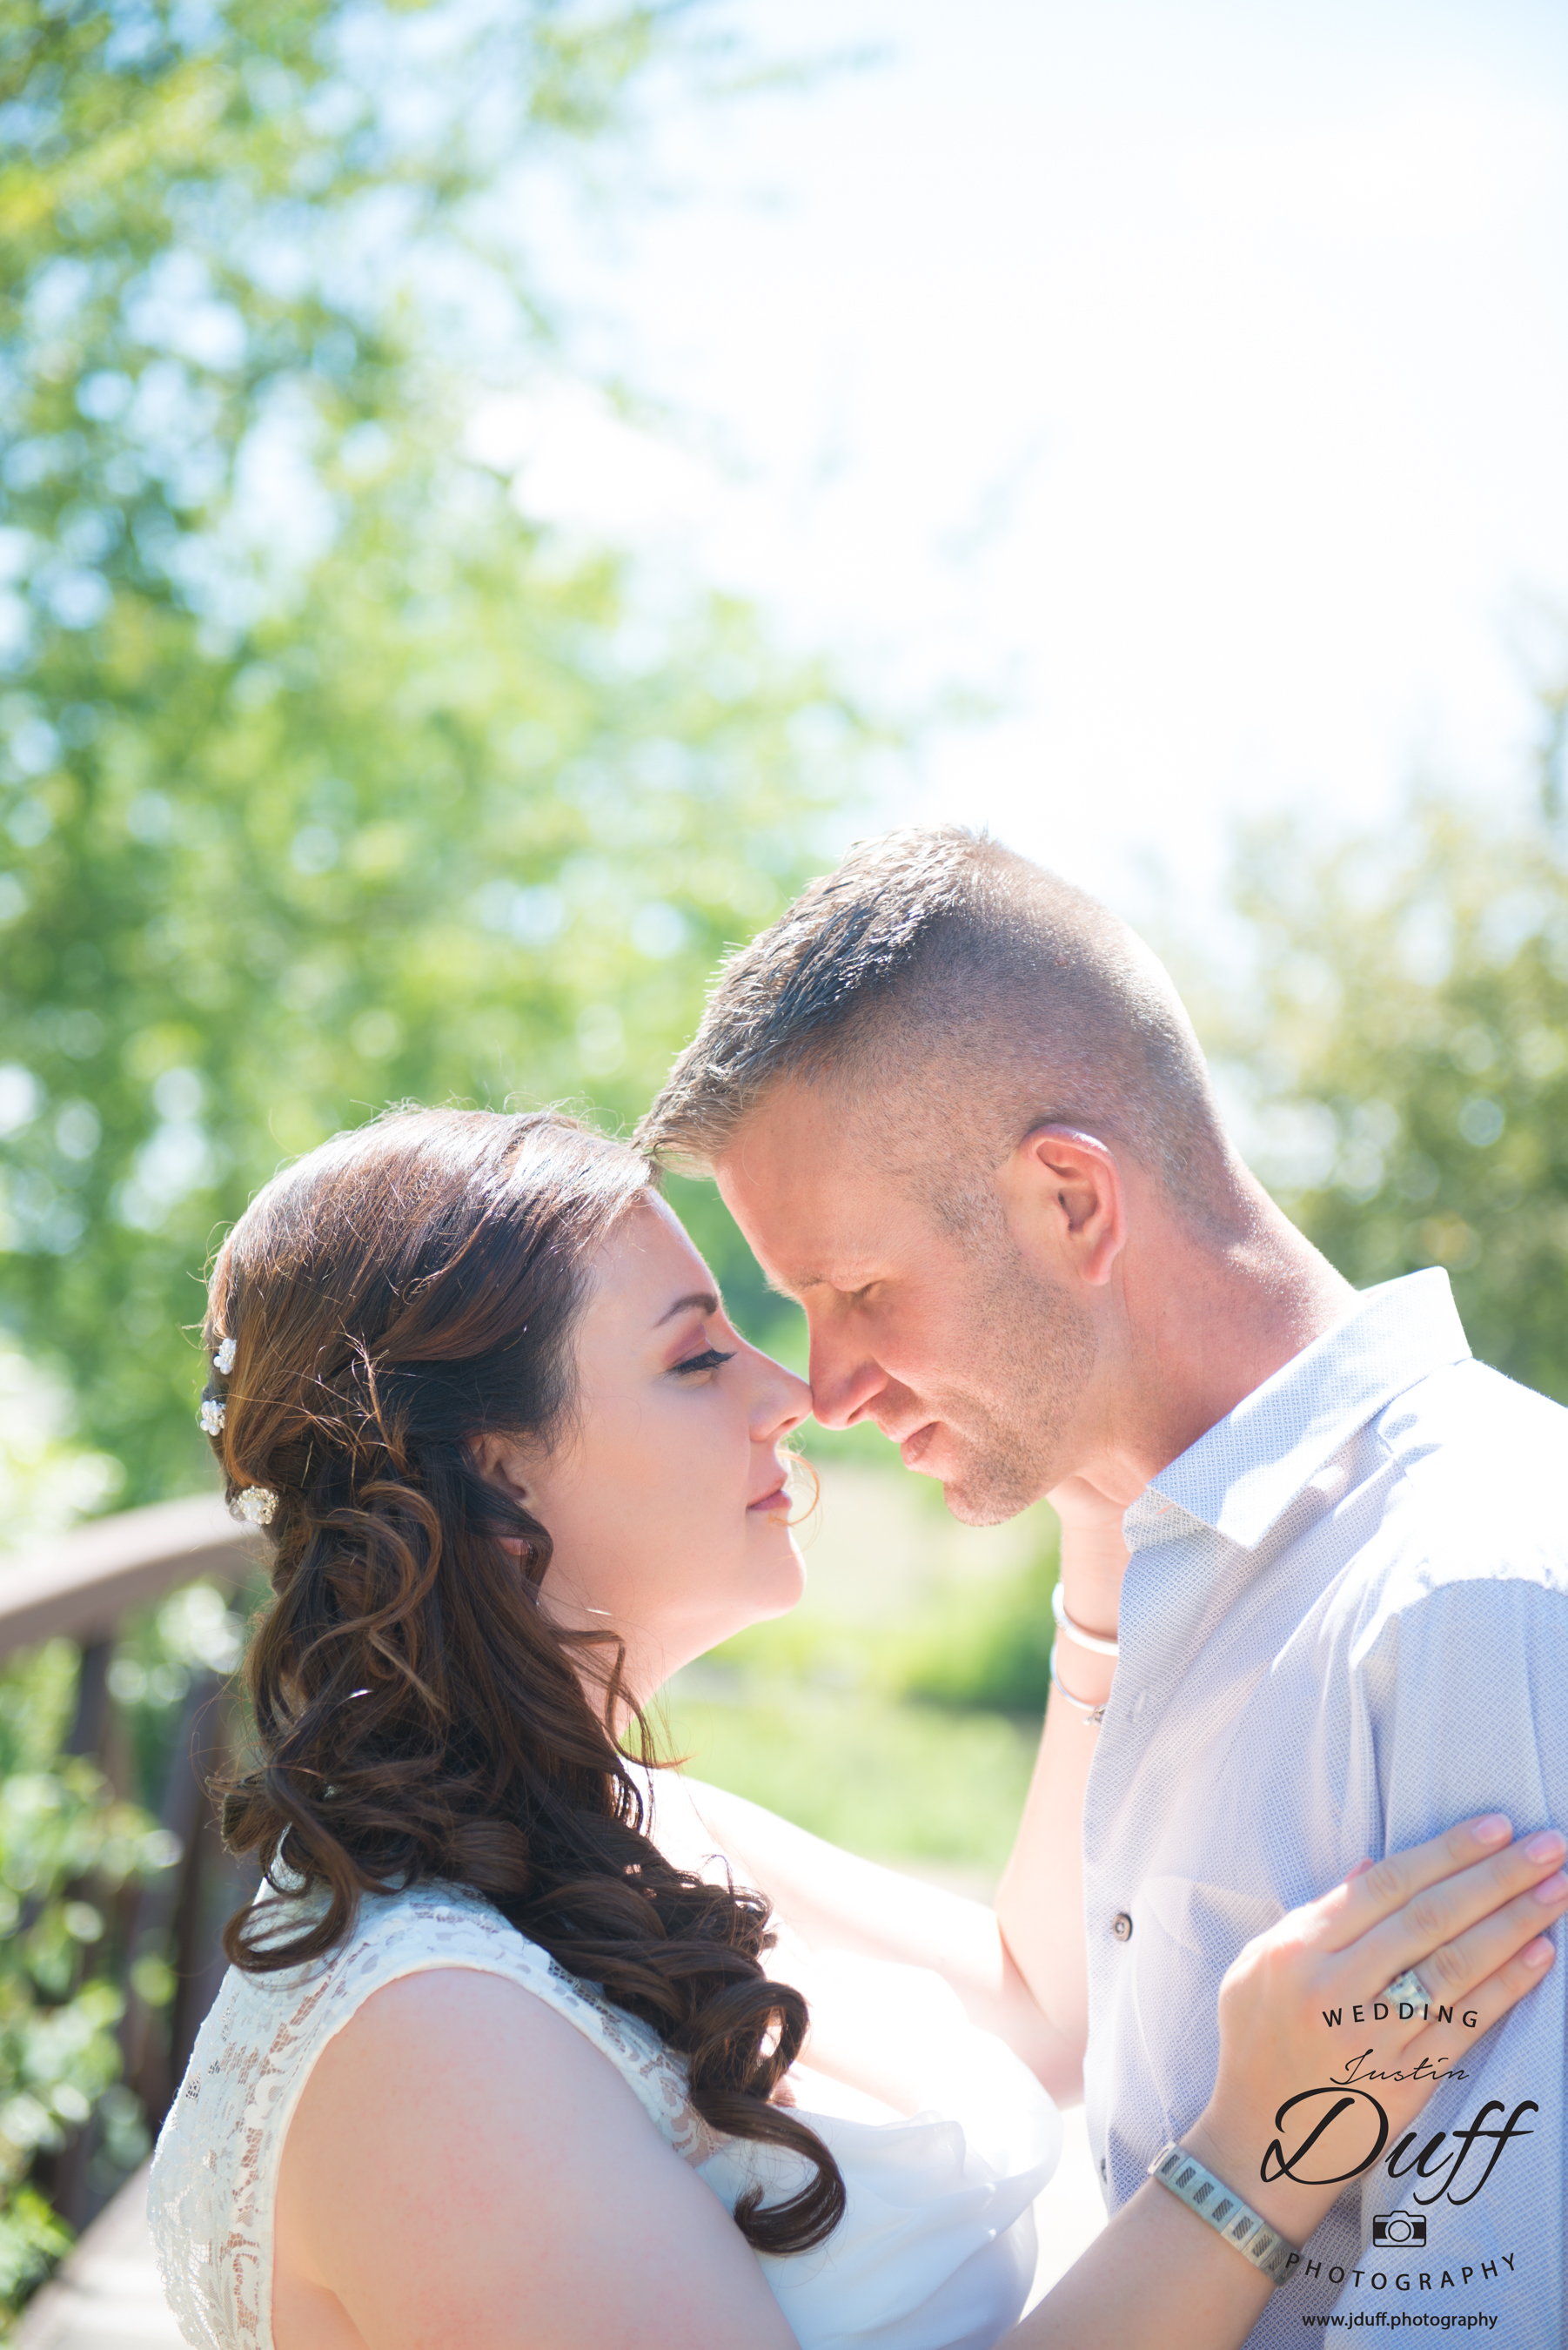 Firefighter Park Wedding - Troy MI wedding photographer. Bride and groom on a bridge touching noses.